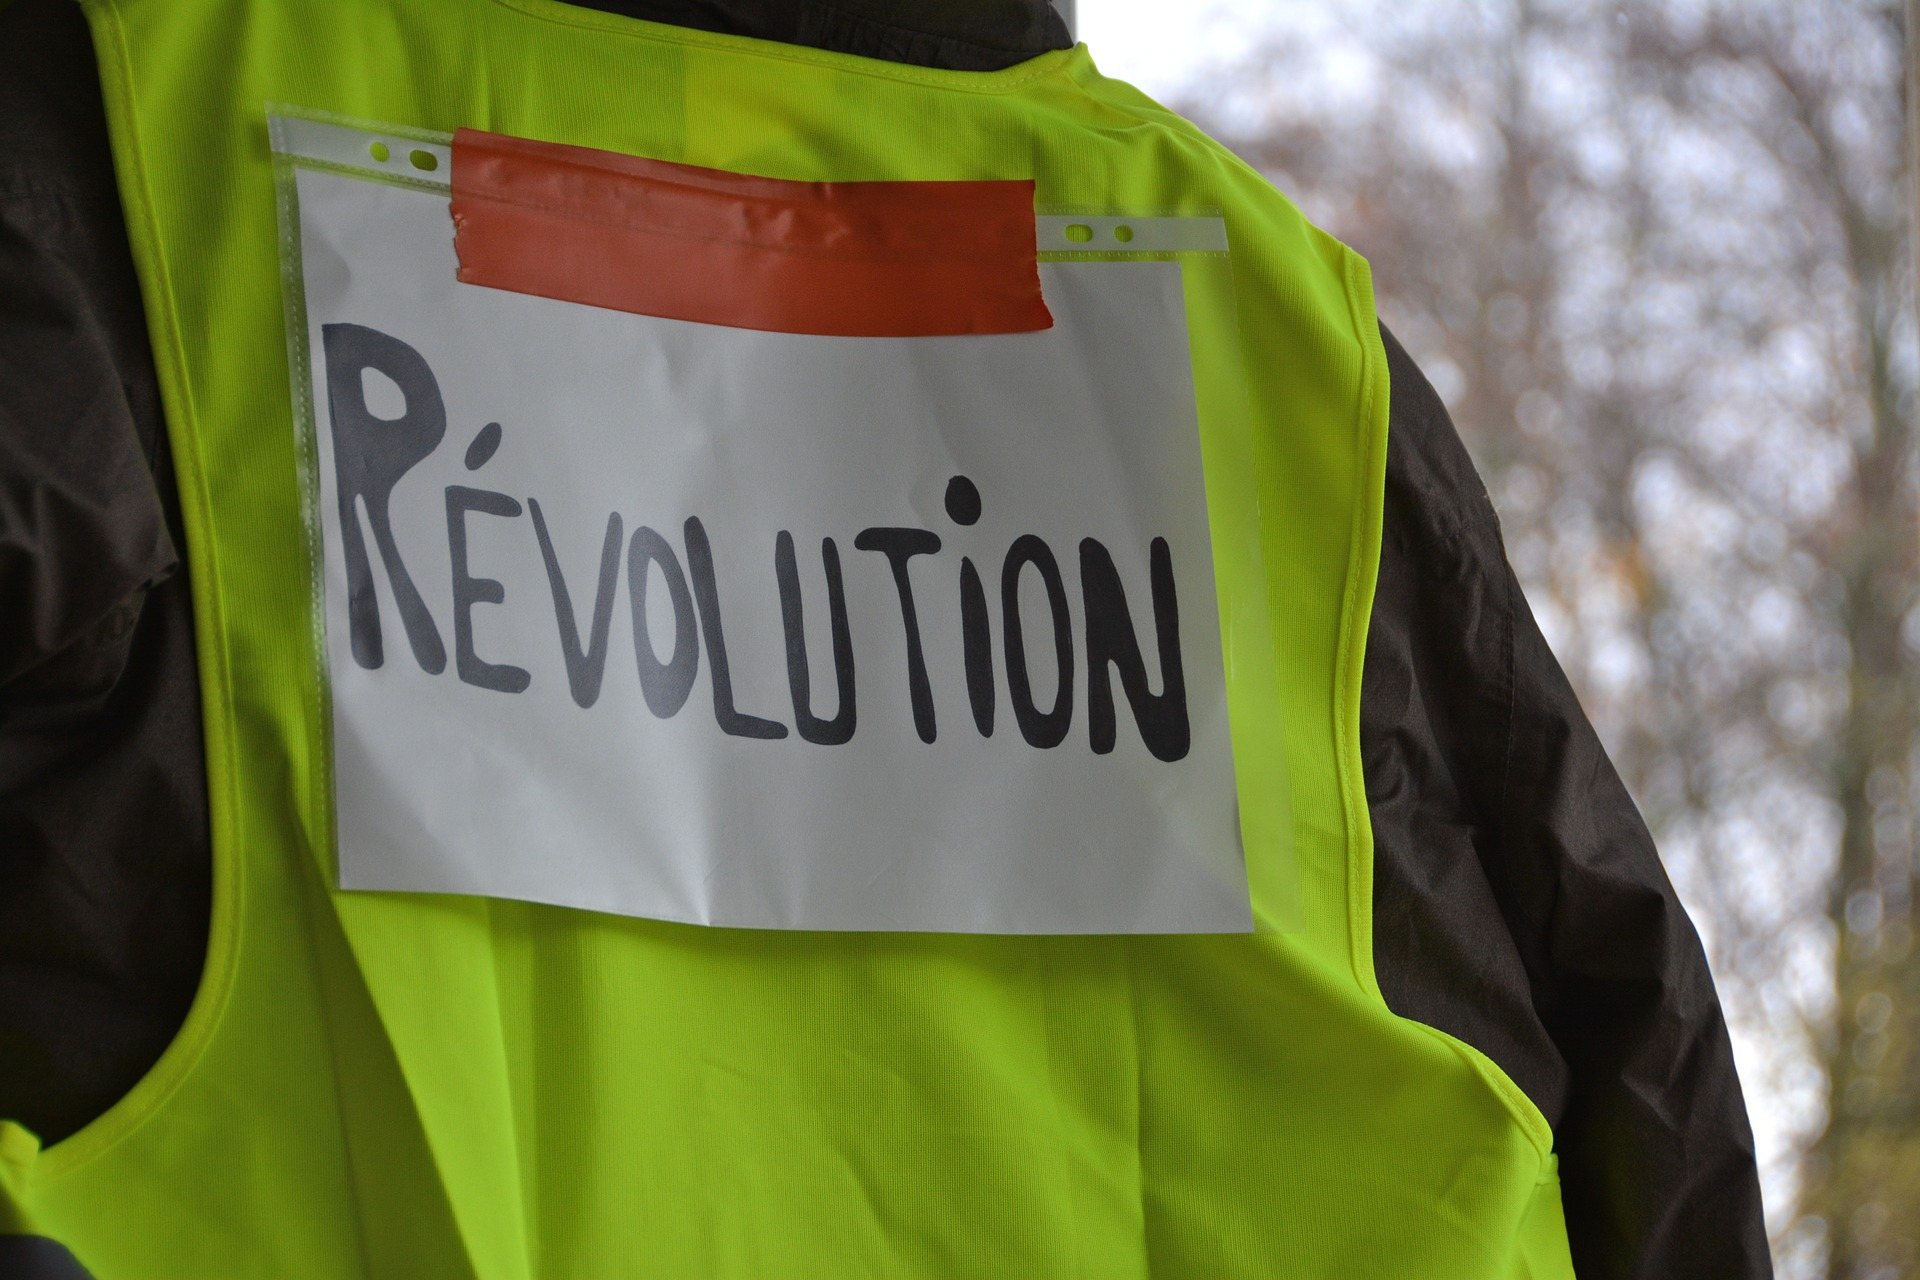 yellow-vests-3854259_1920-french-classes.nyc.jpg